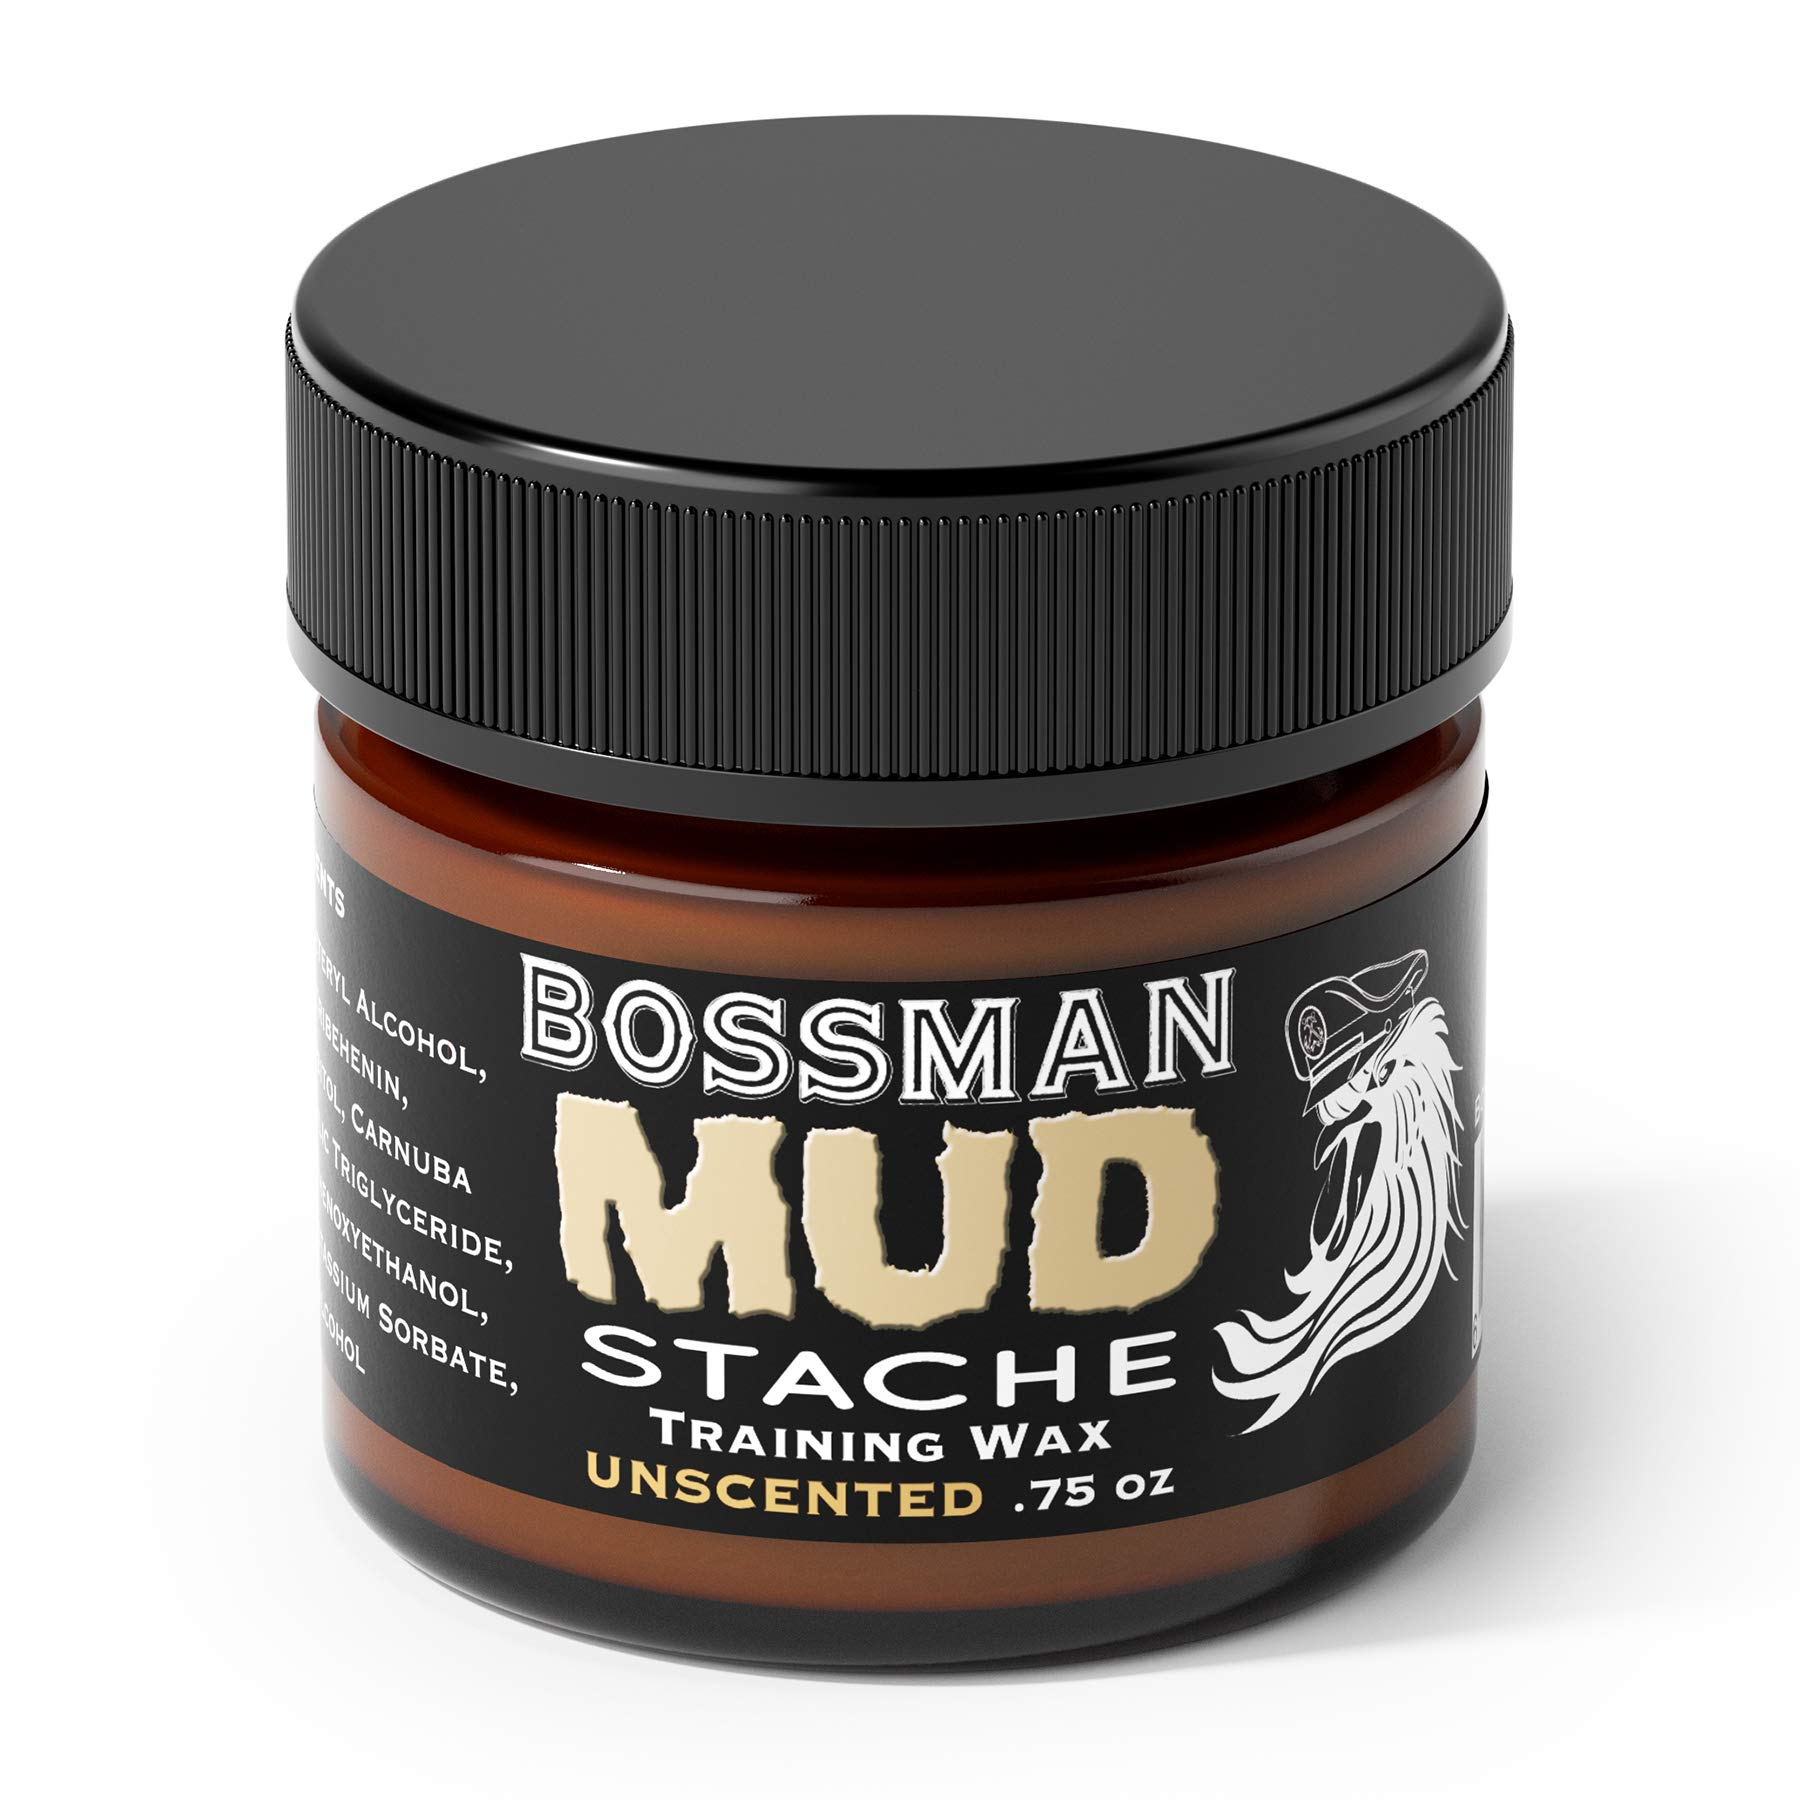 Bossman MUDstache - Mustache Training Wax, Lasts 24hrs, Unscented, No Tint. Tame, Train and Style by Bossman (Image #3)